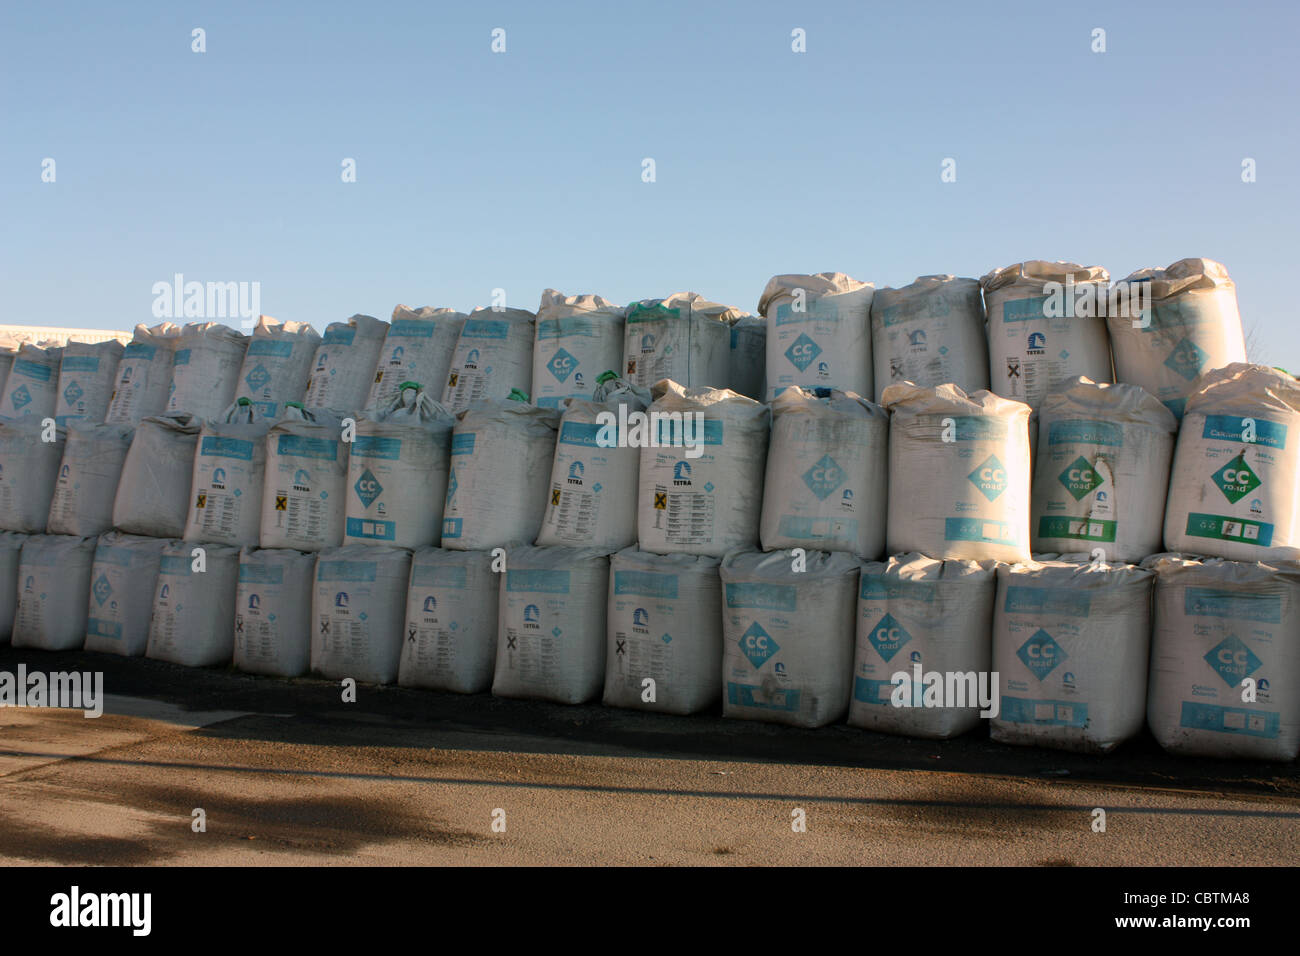 pile stack of bulk bags for transportation of goods - Stock Image